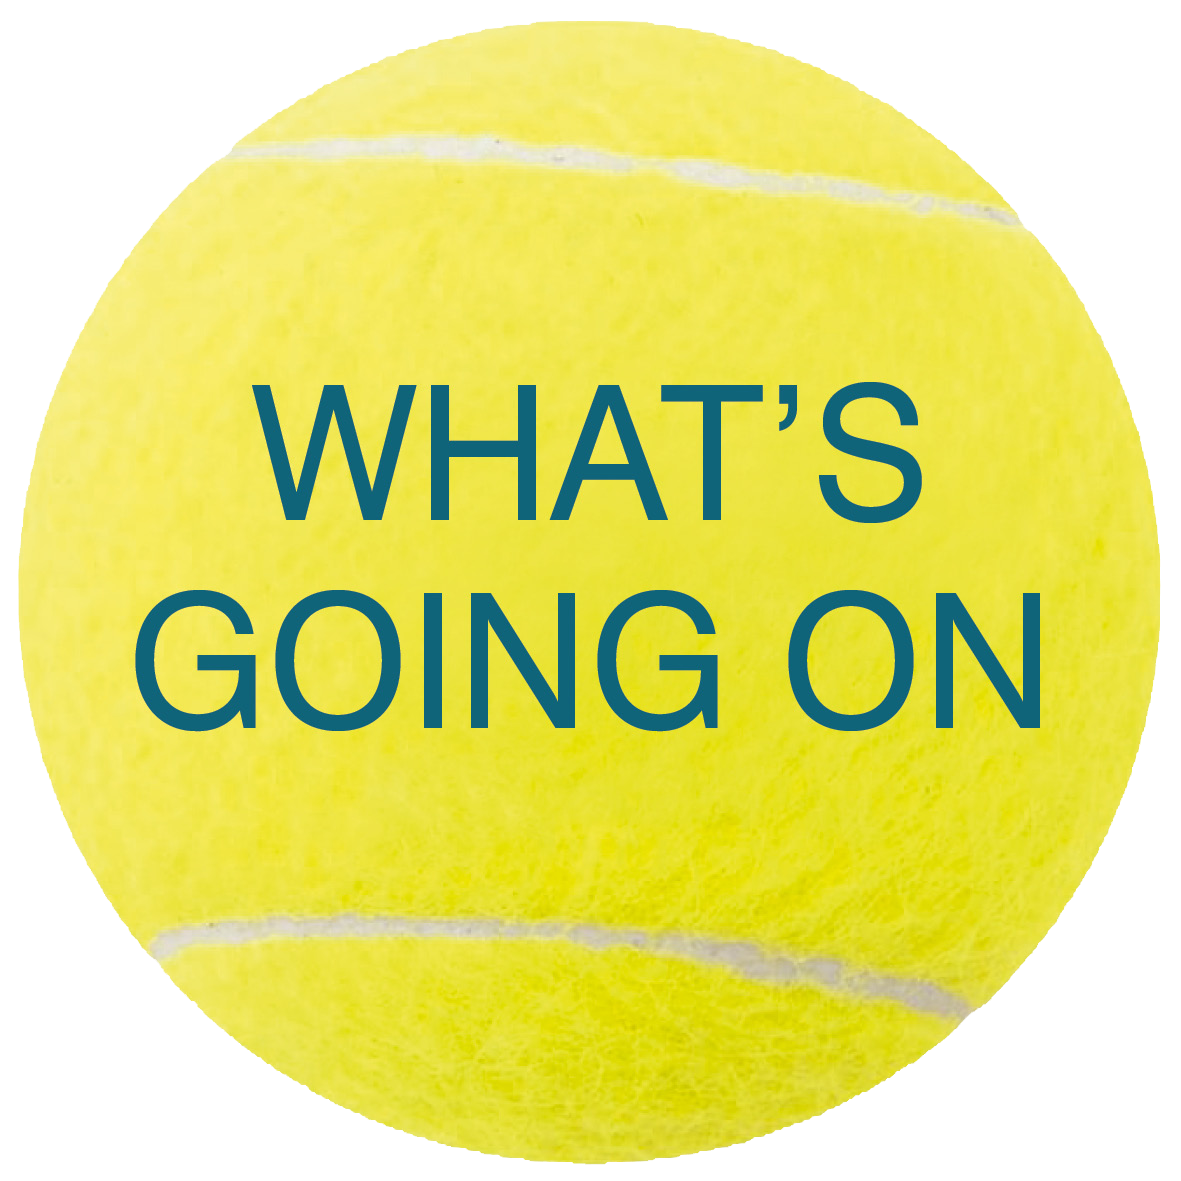 Whats happening at Penzance Tennis Club